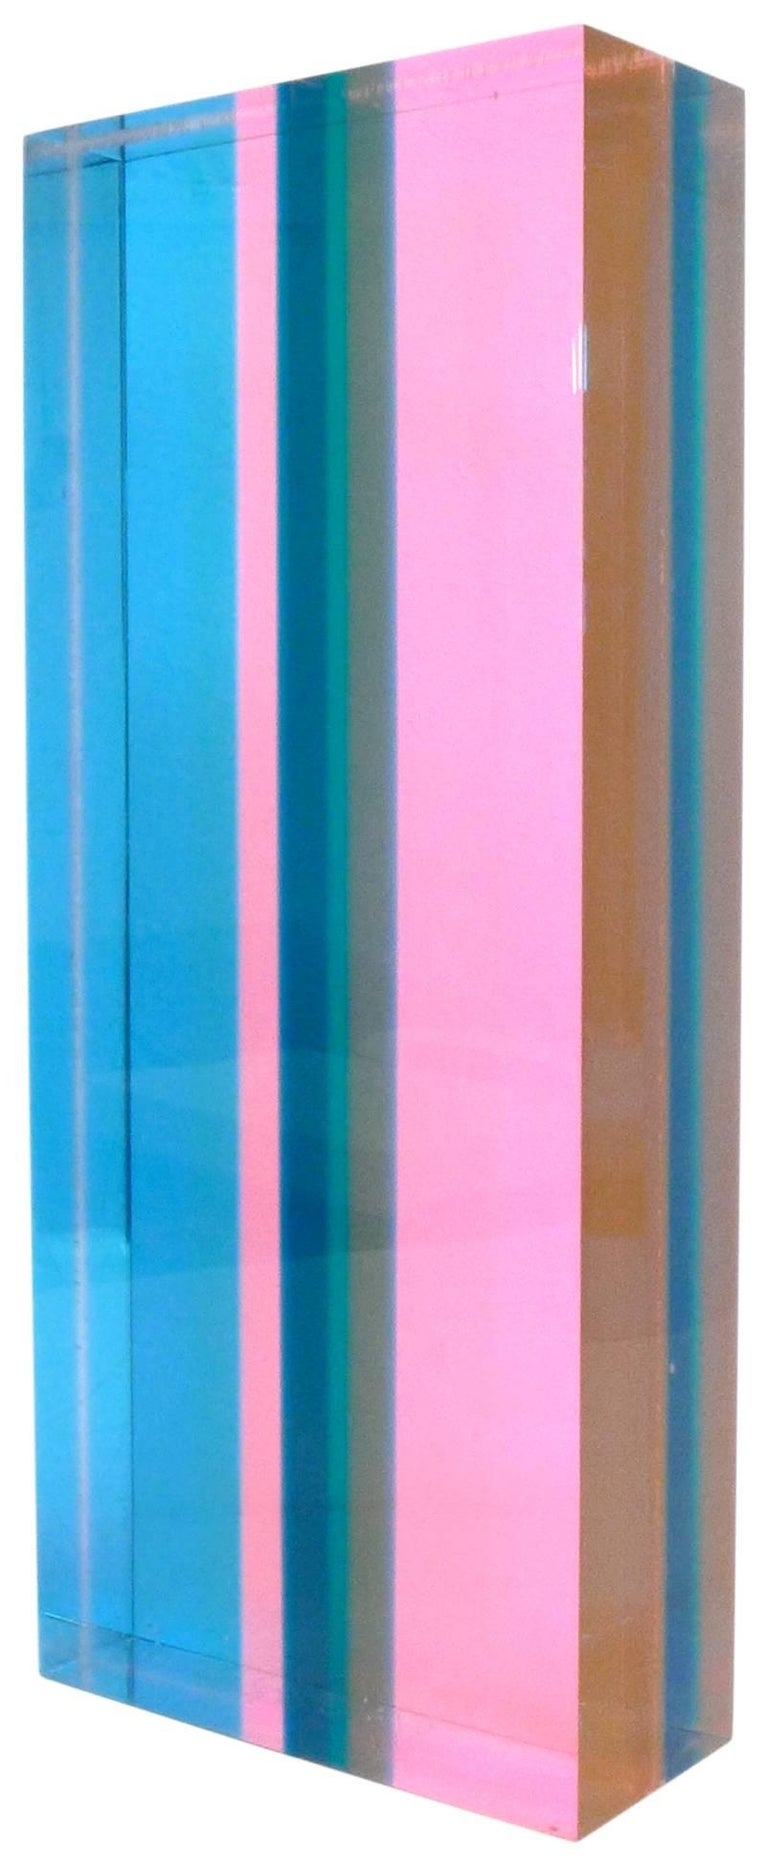 A fantastic, laminated-Lucite sculpture by Los-Angeles-based artist Vasa Mihich. A kaleidoscopic, mini-monolith; vibrant hues overlap and blend as one's vantage point changes. Enticing from all angles and even encourages one to hold and behold, an